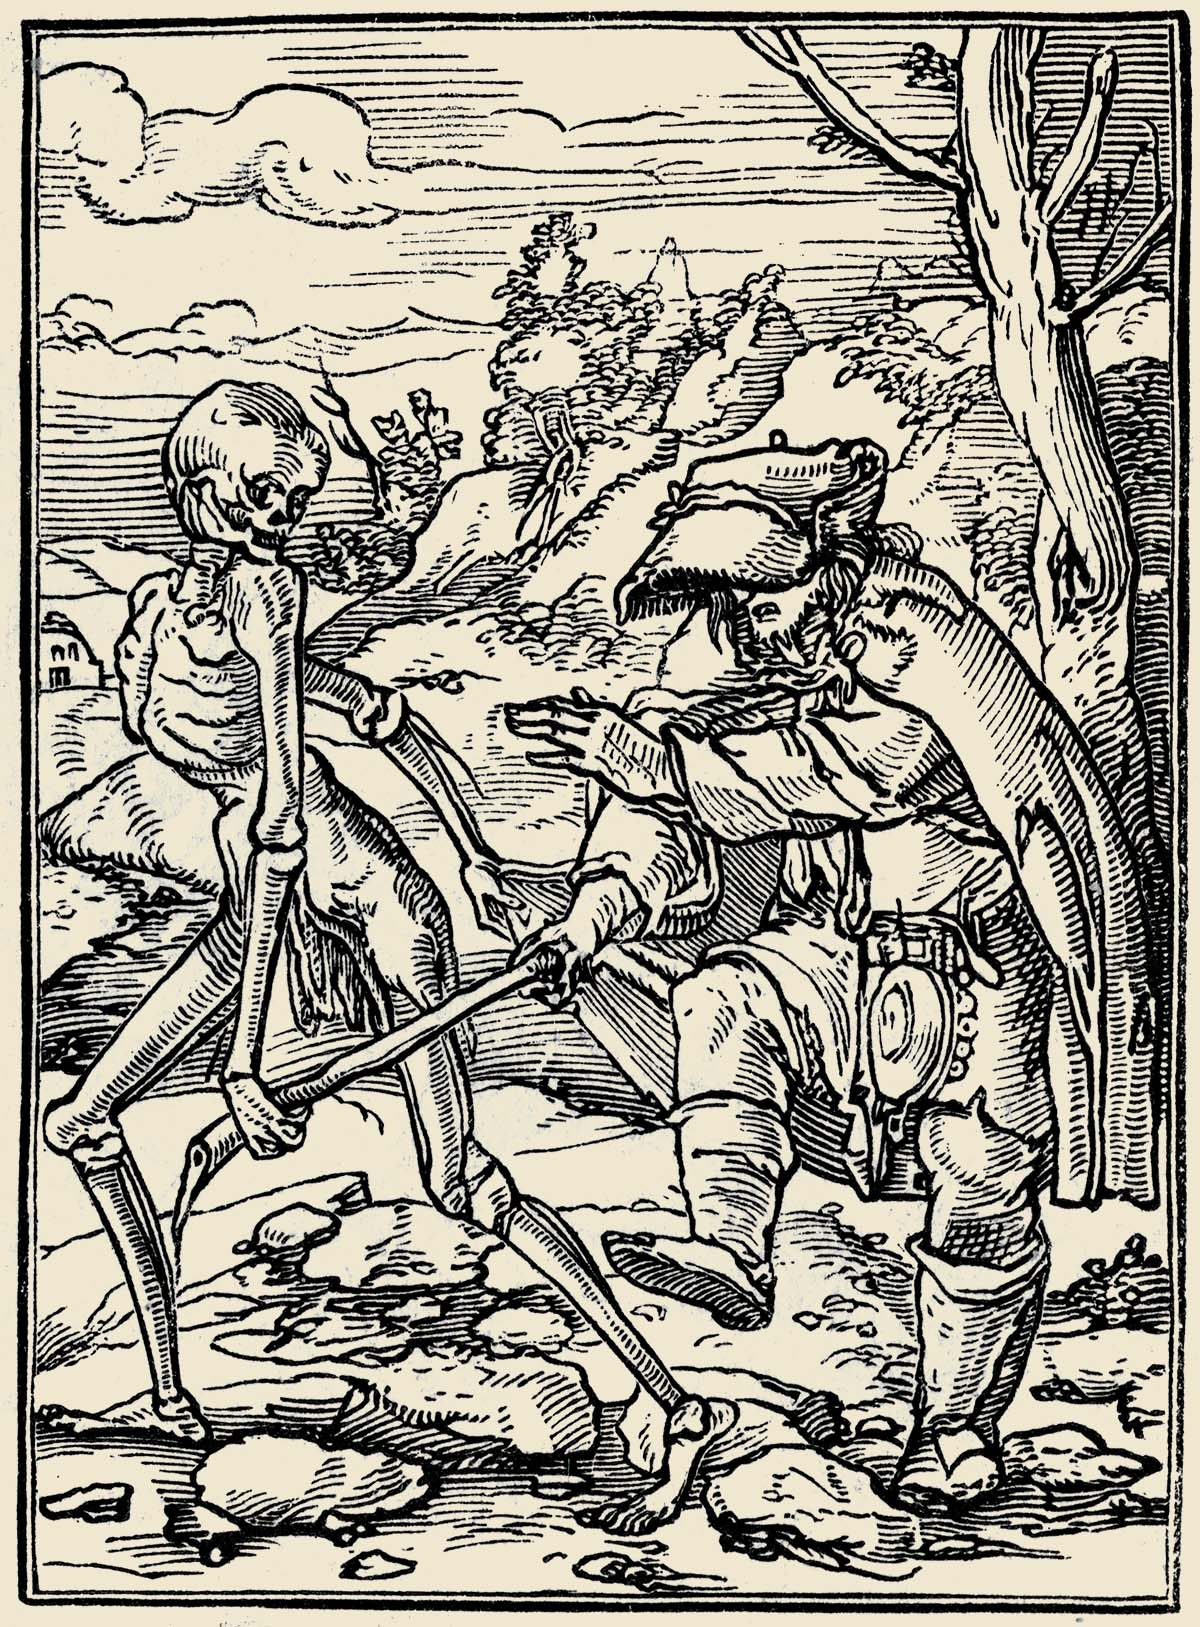 Hans Holbein Dance of Death